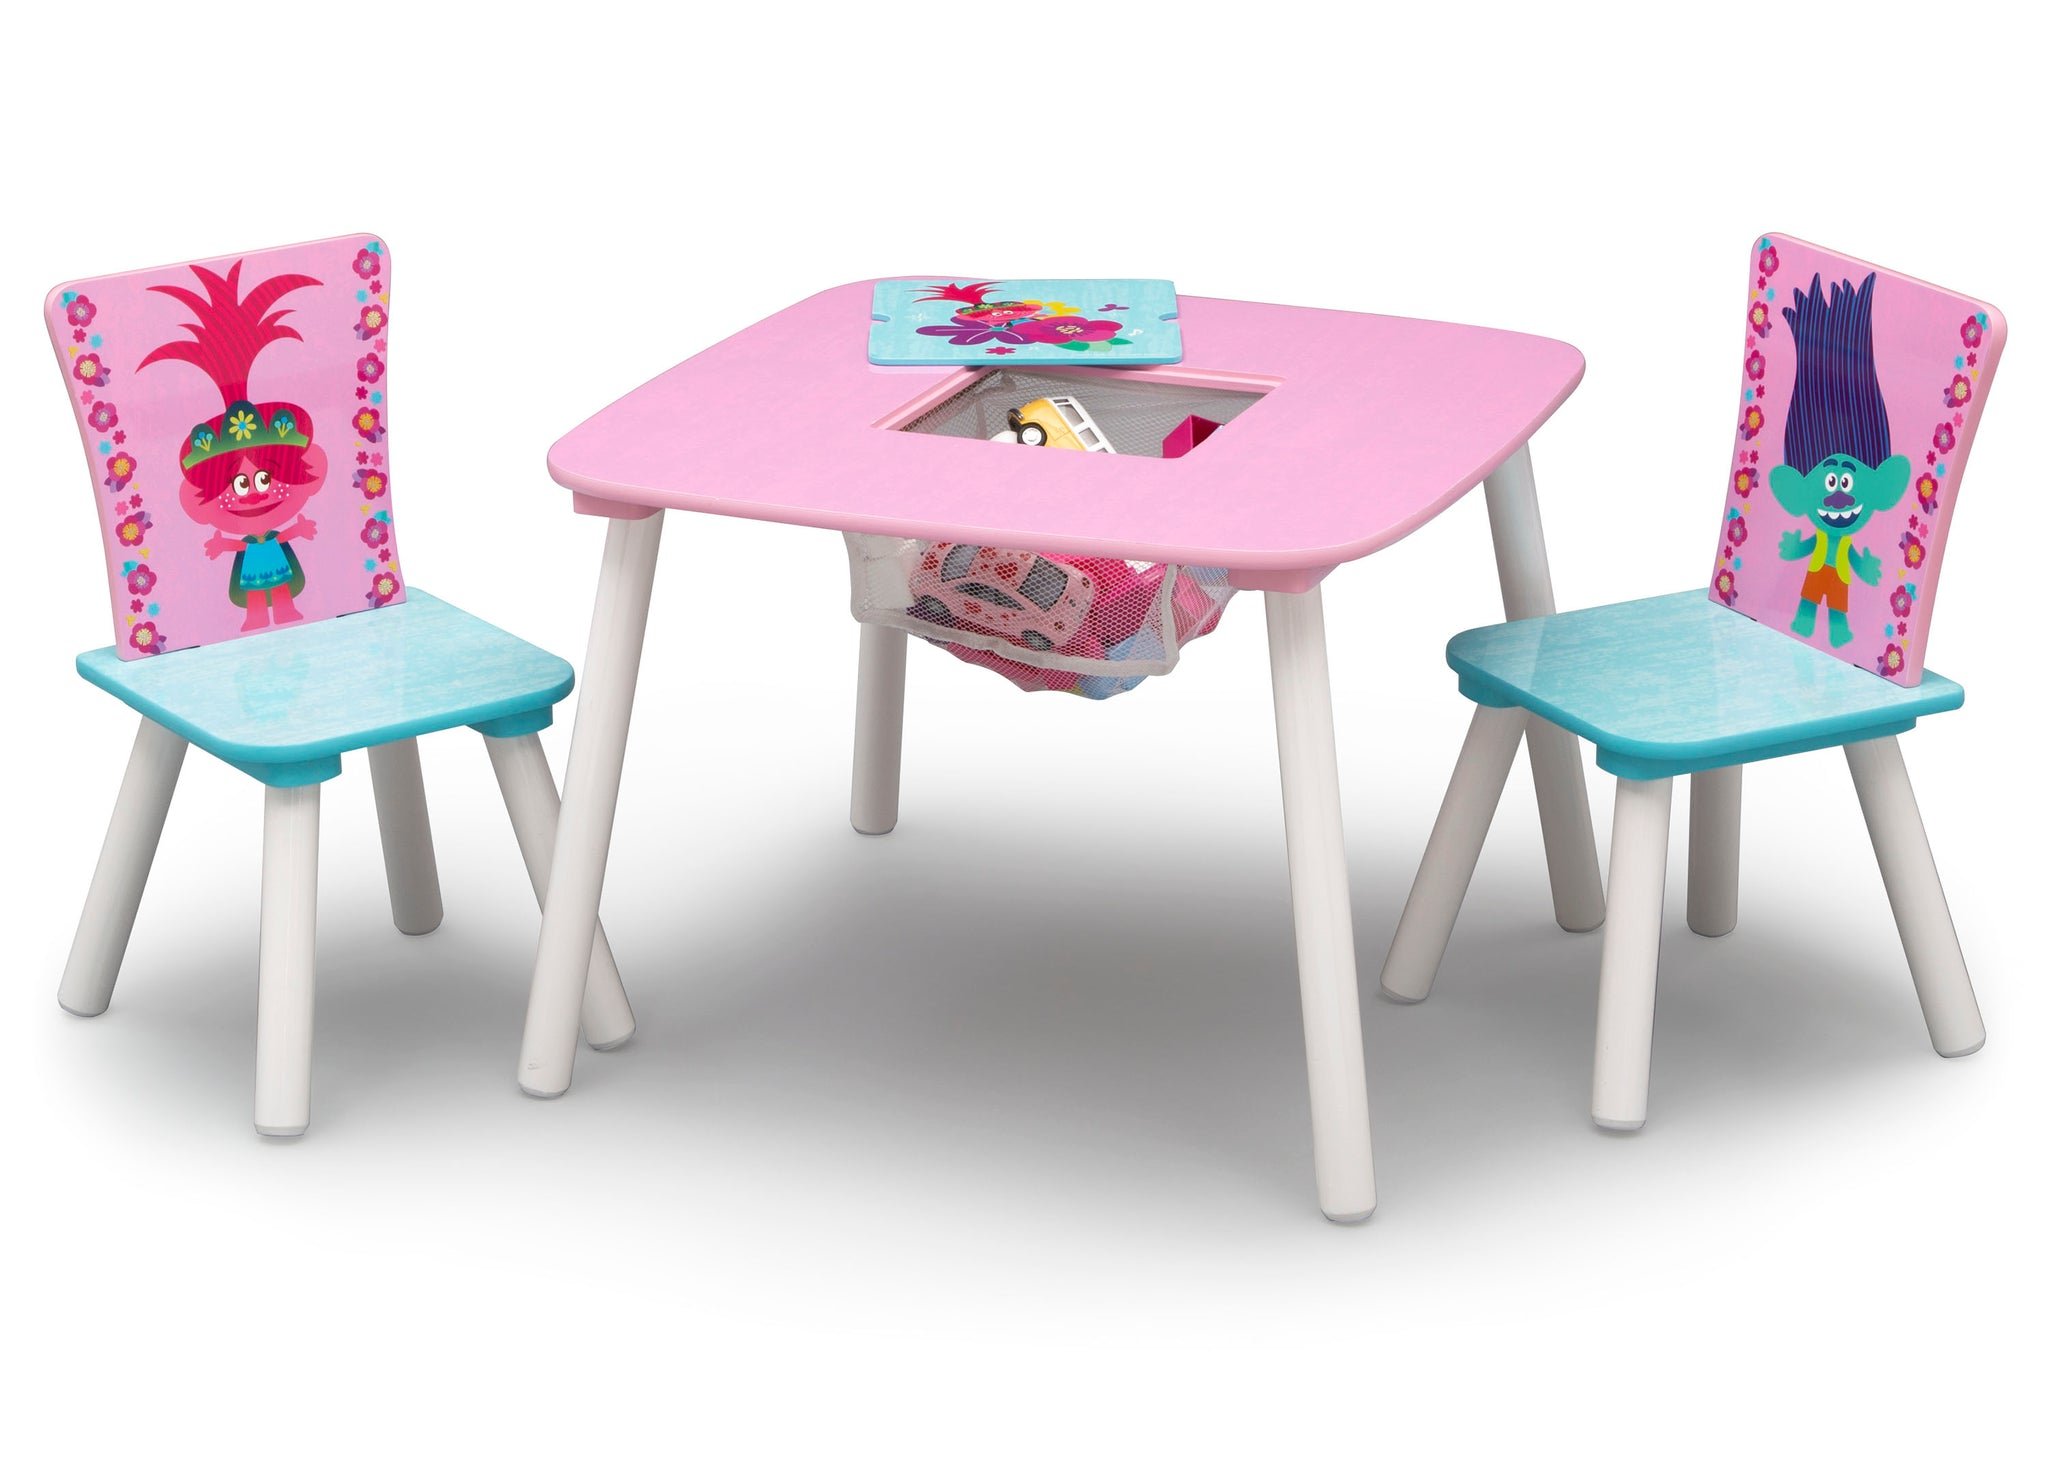 Delta Children Trolls World Tour (1177) Table and Chair Set with Storage, Left Silo View with Open Storage